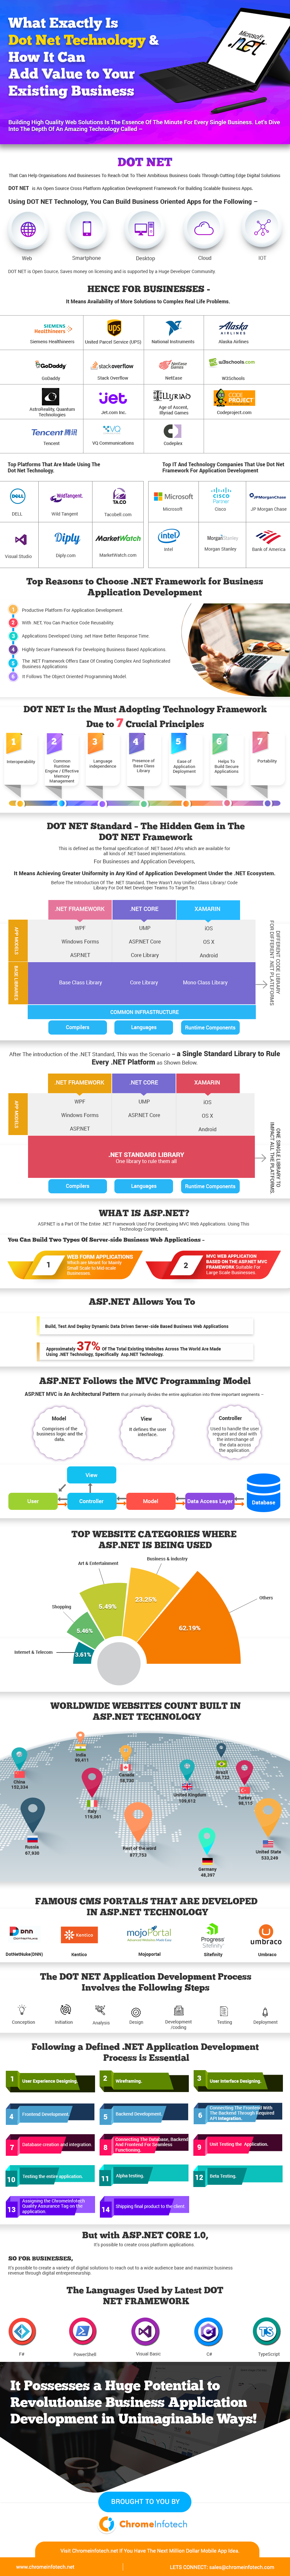 dot net infographic